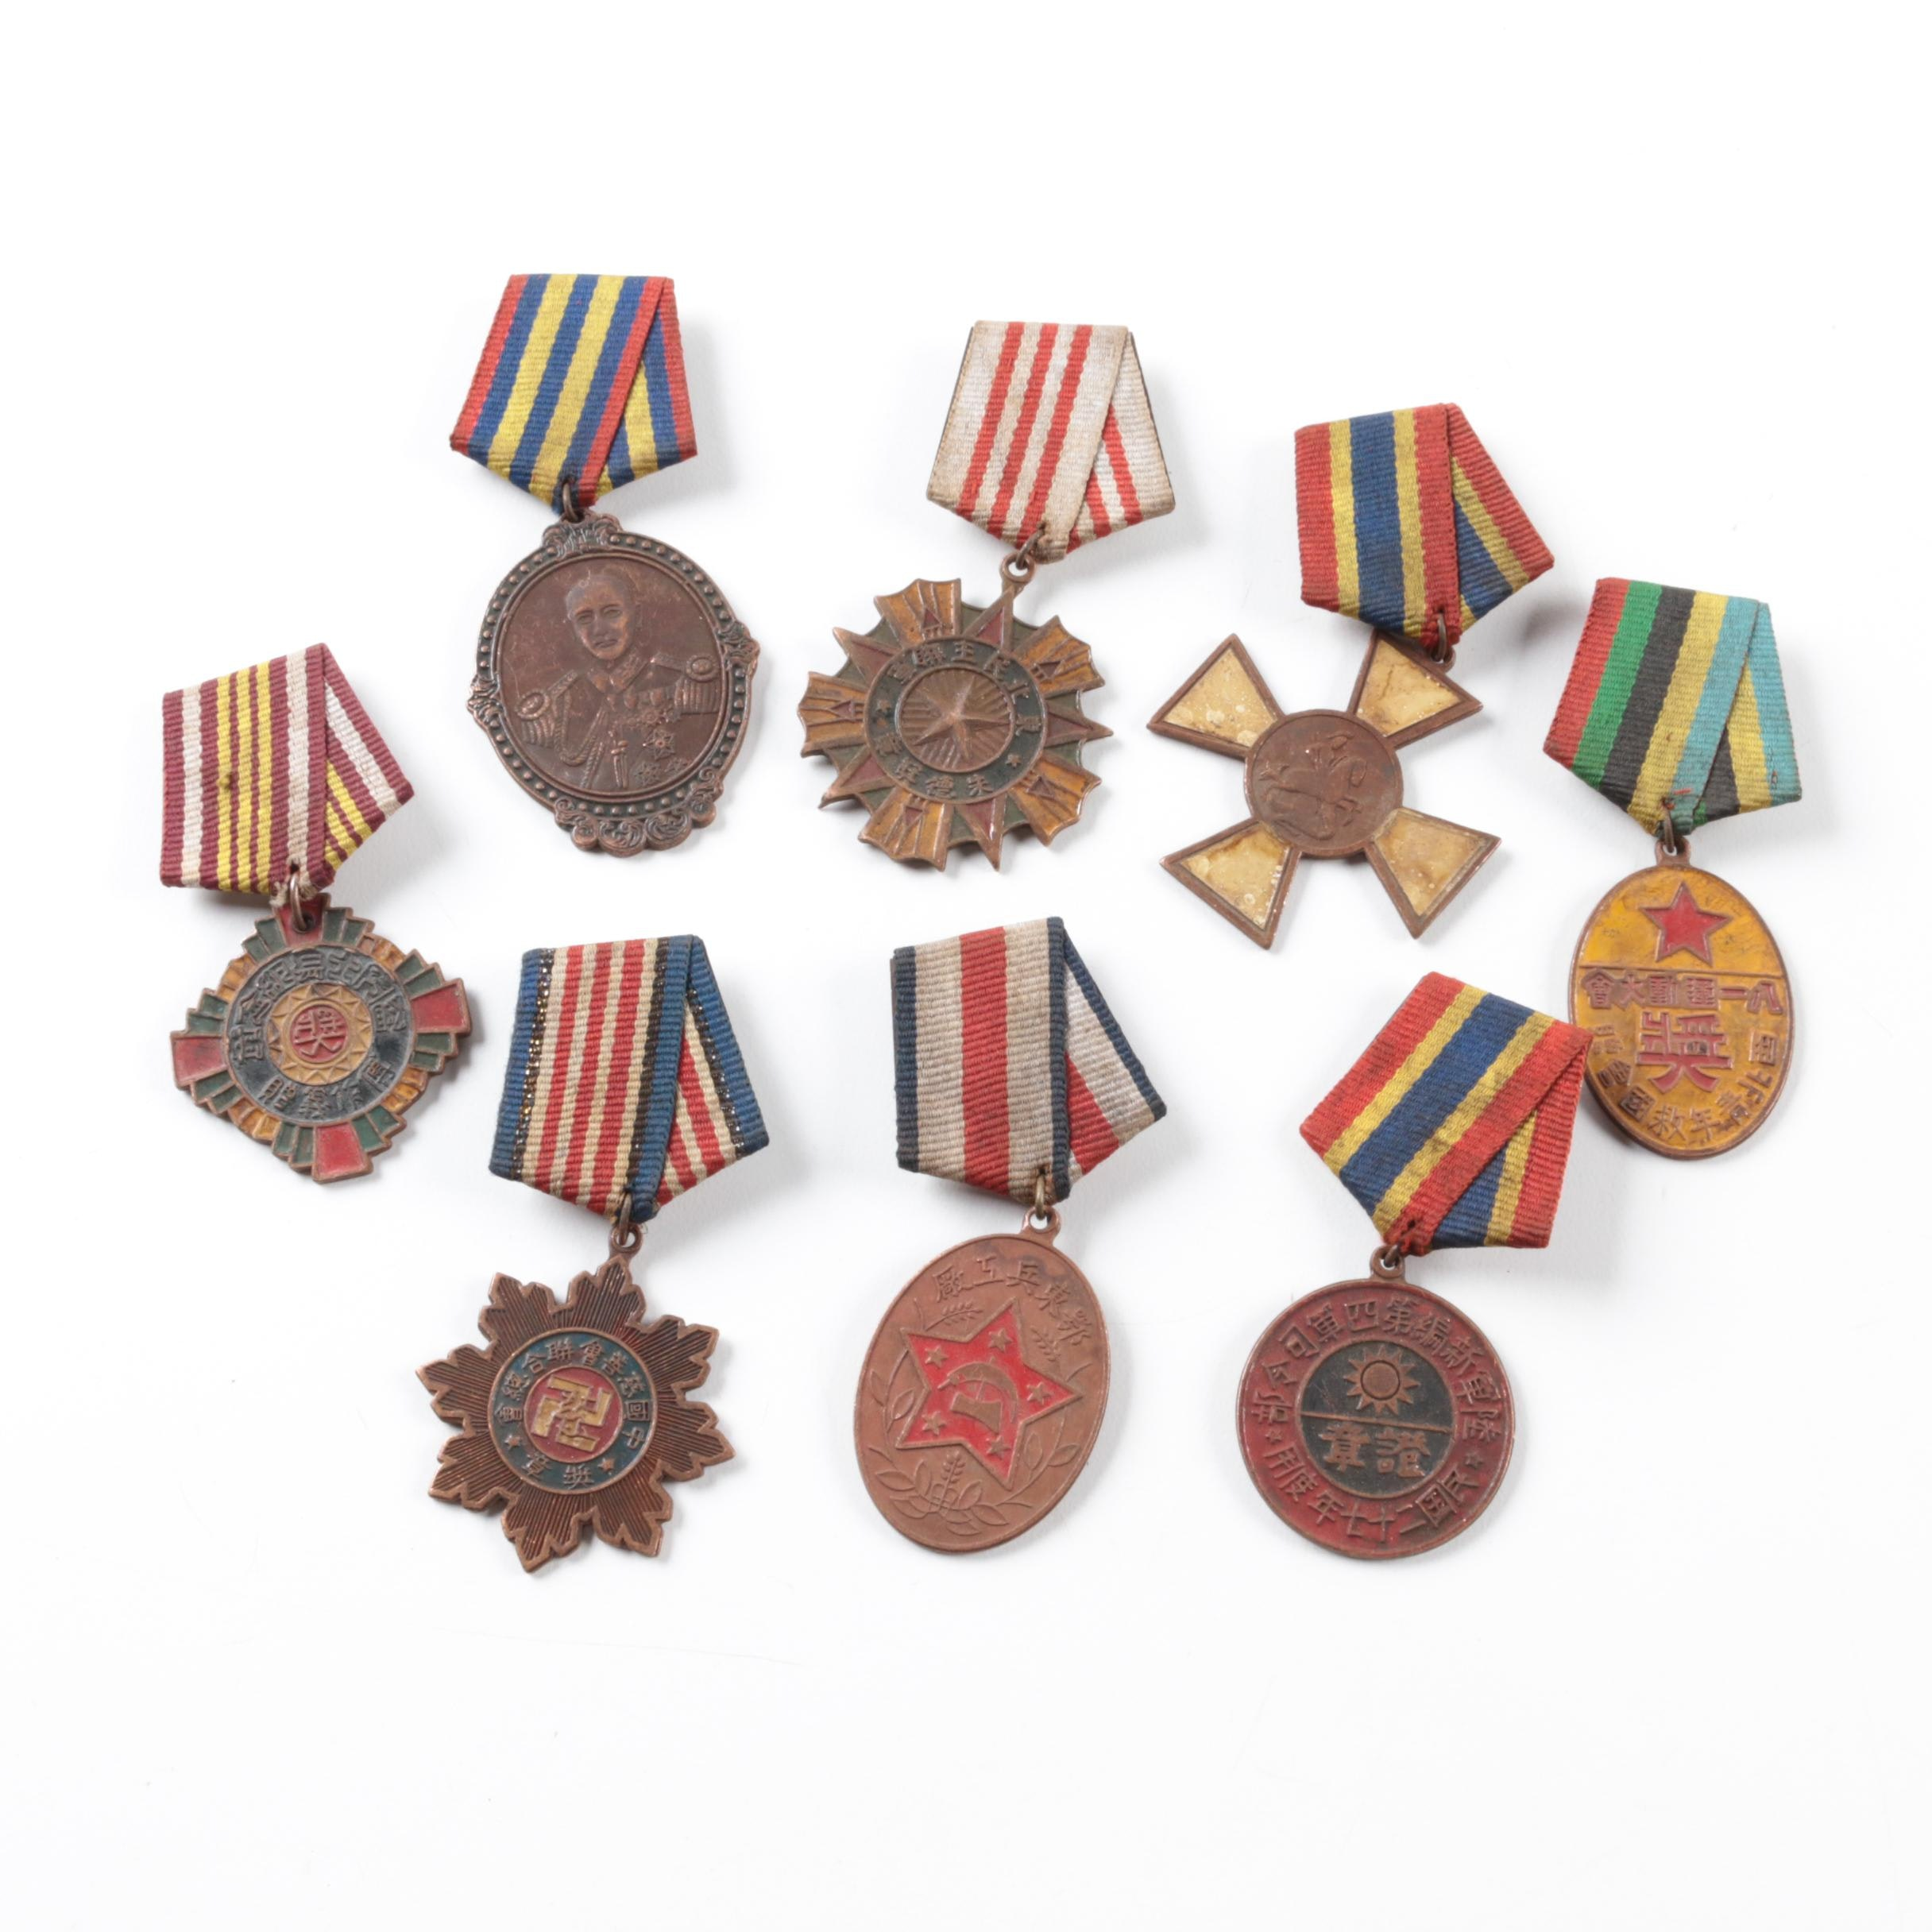 Chinese Medals Including Charities Medal and Chiang Kai Shek